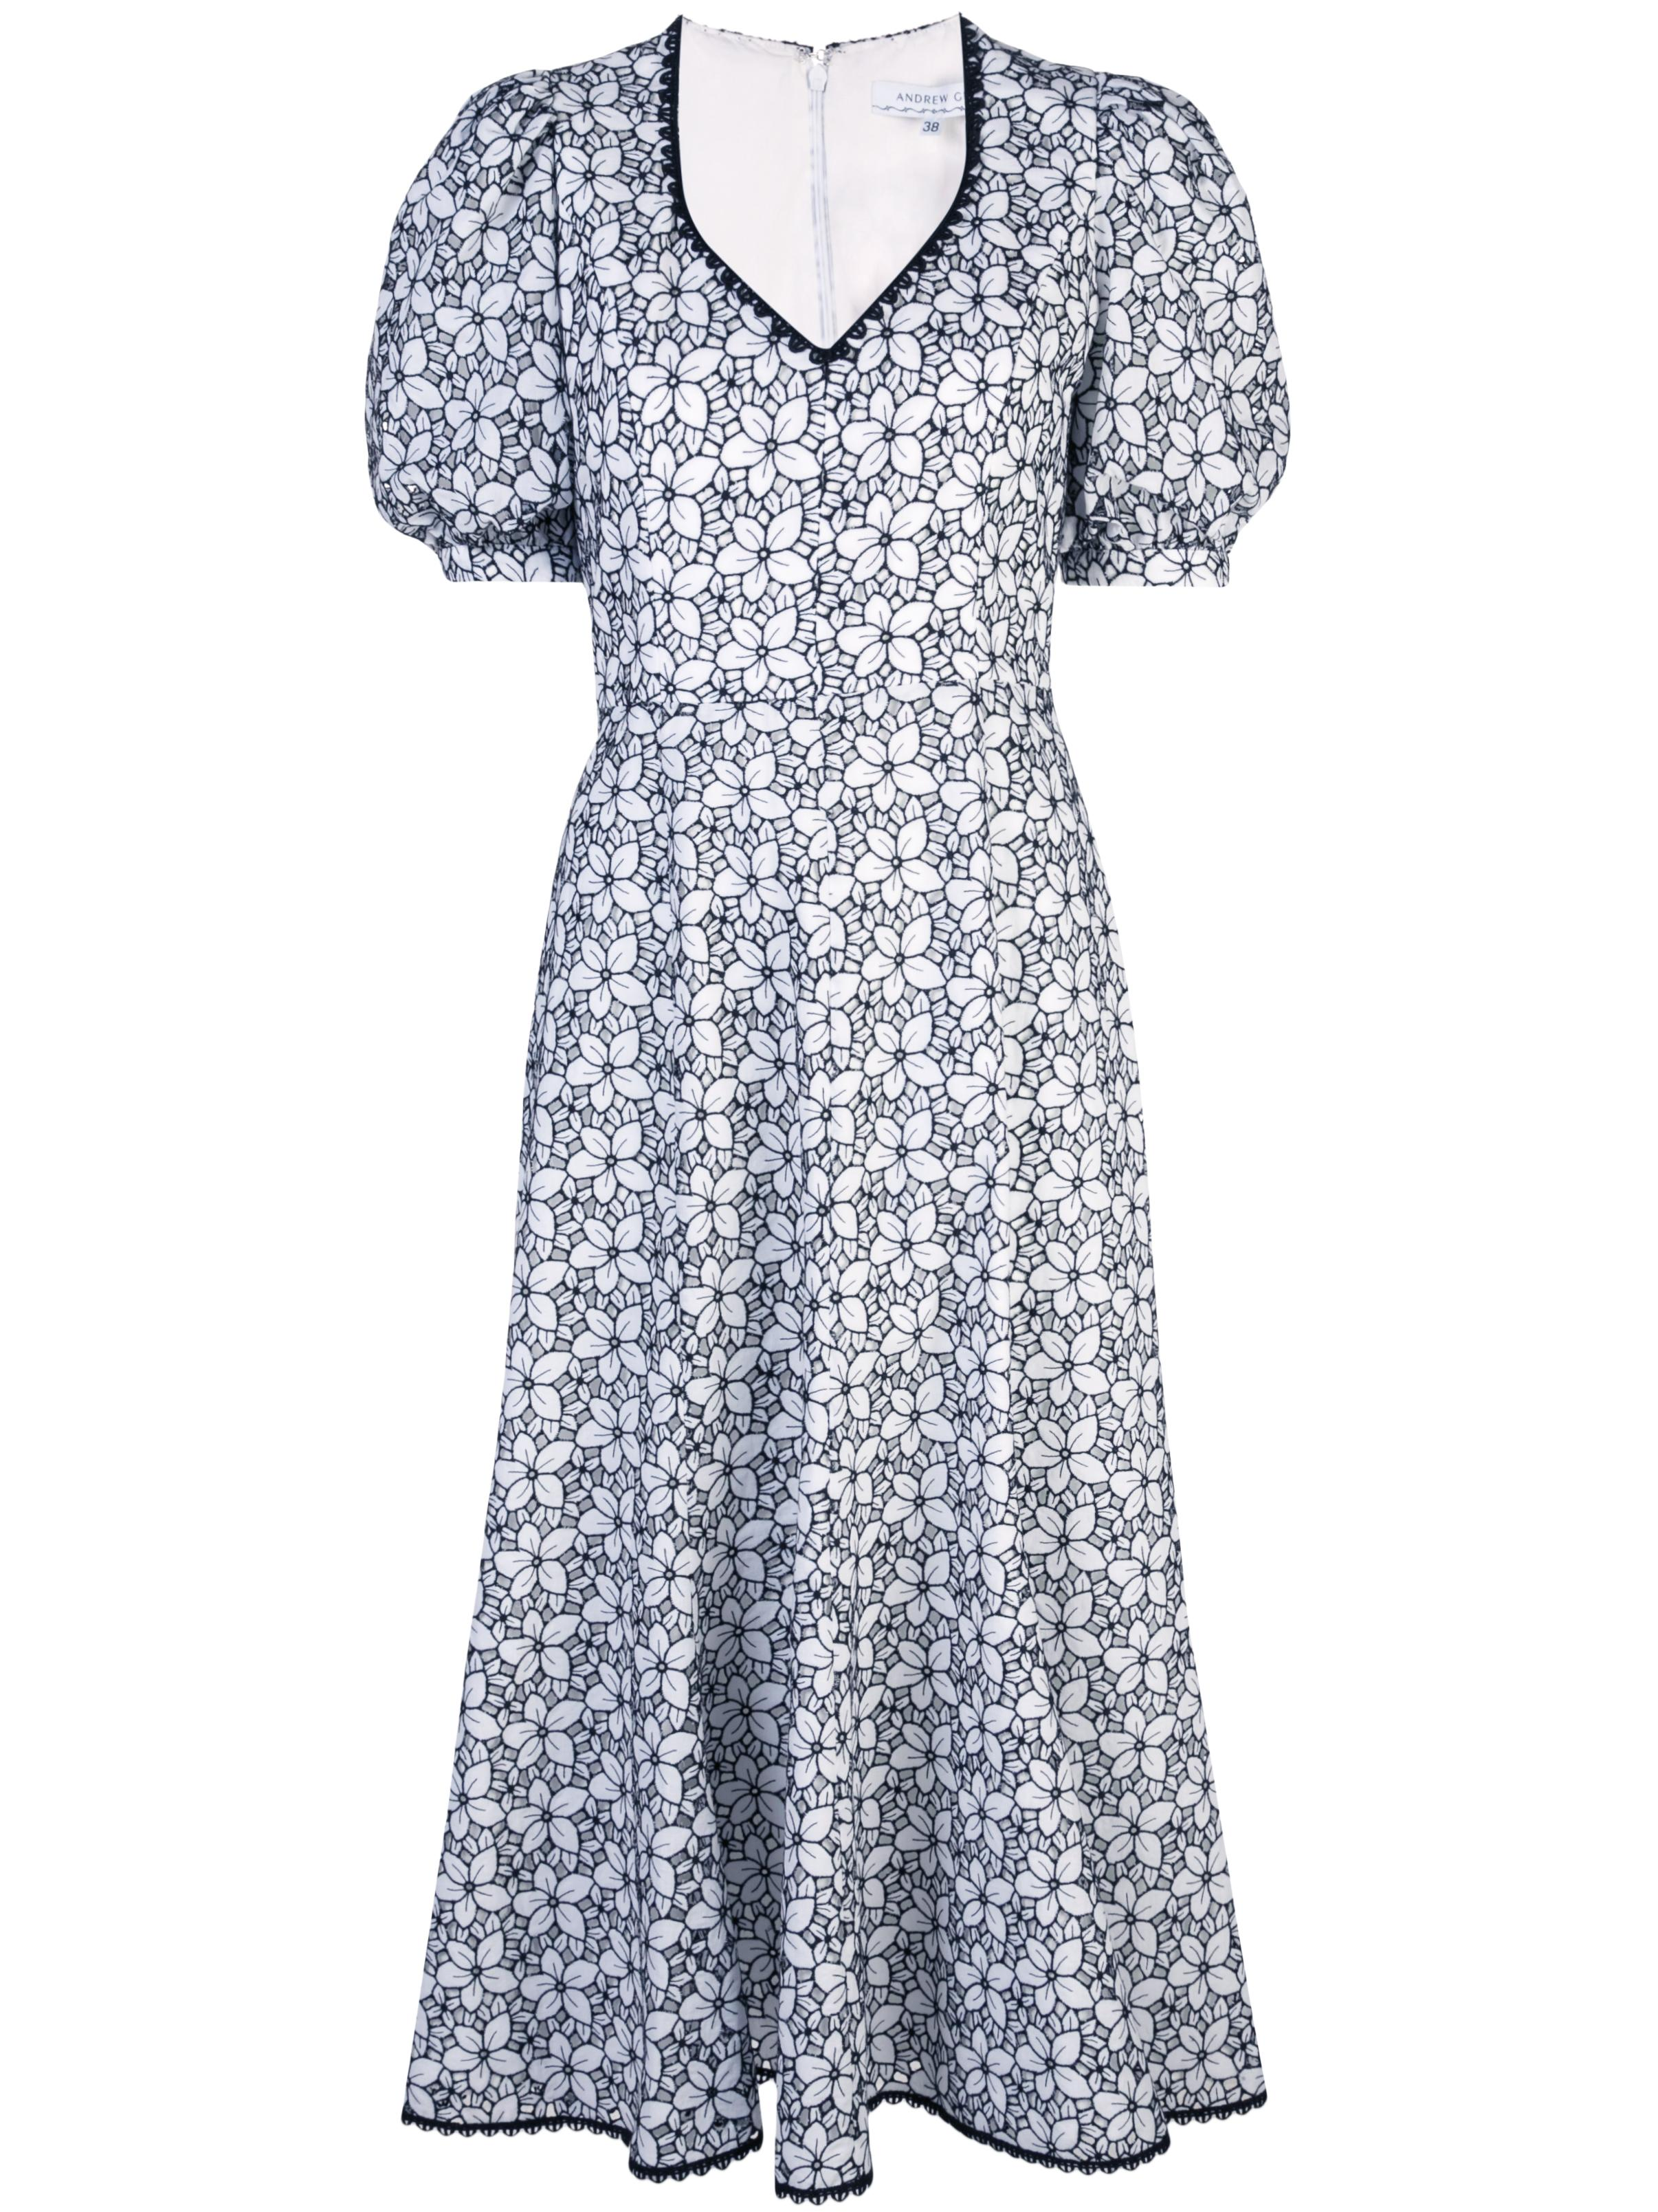 Short Puff Slv Floral V-Neck Woven Dress